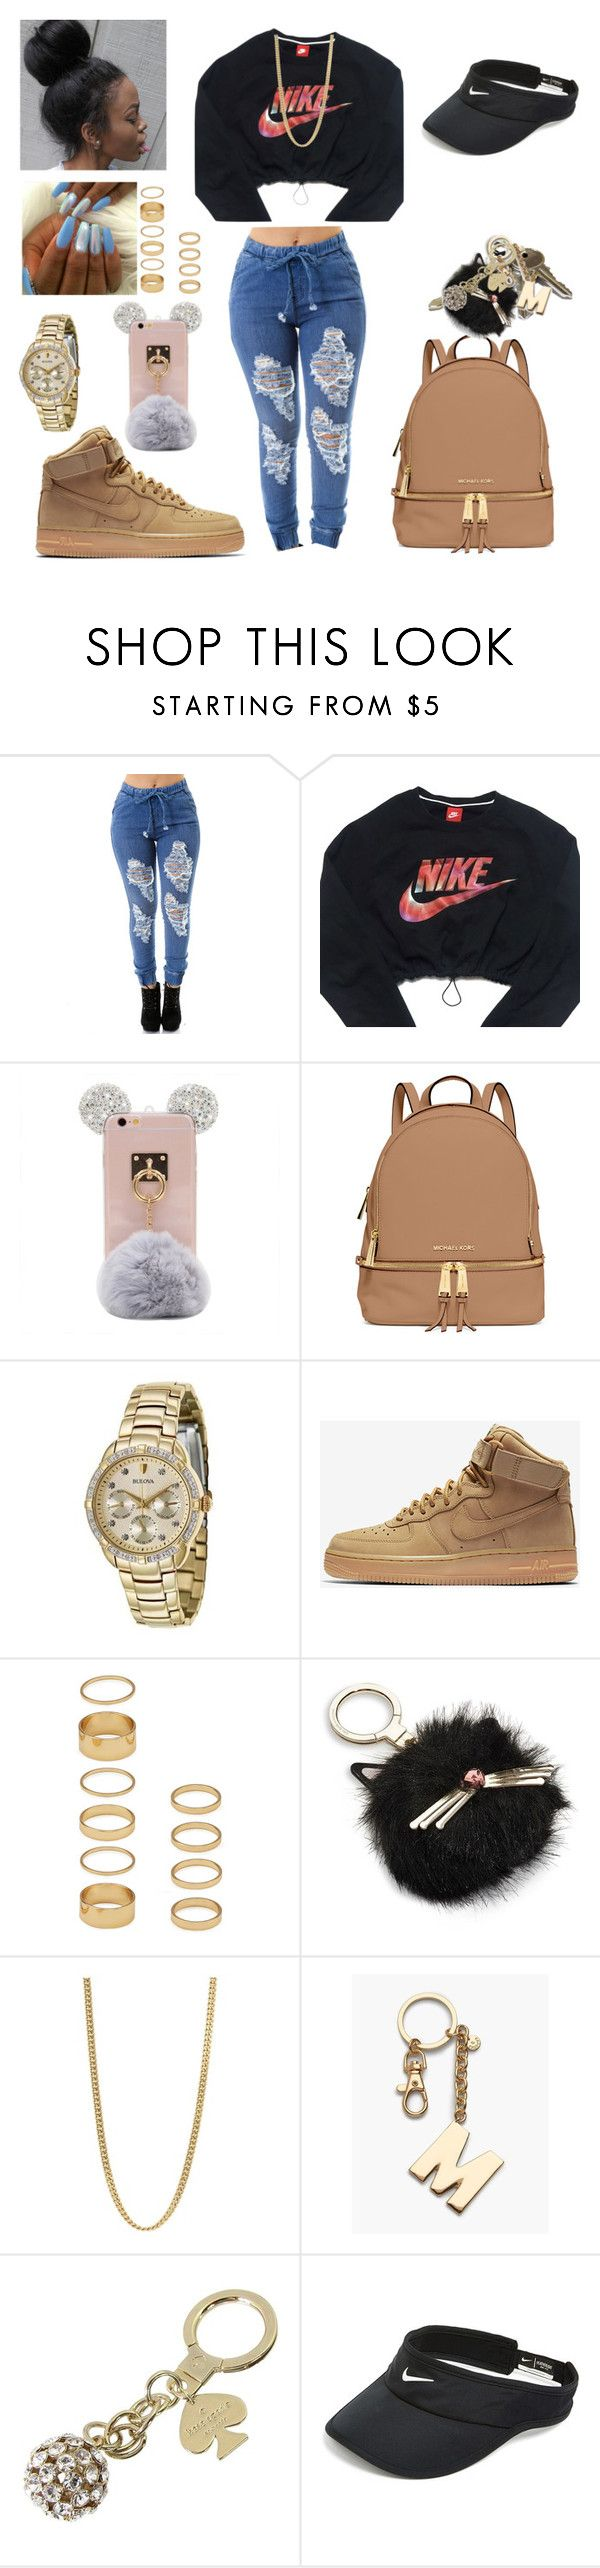 """#Nike"" by missmka ❤ liked on Polyvore featuring NIKE, MICHAEL Michael Kors, Bulova, Forever 21, Avon, Kate Spade, Marc by Marc Jacobs and Talbots"